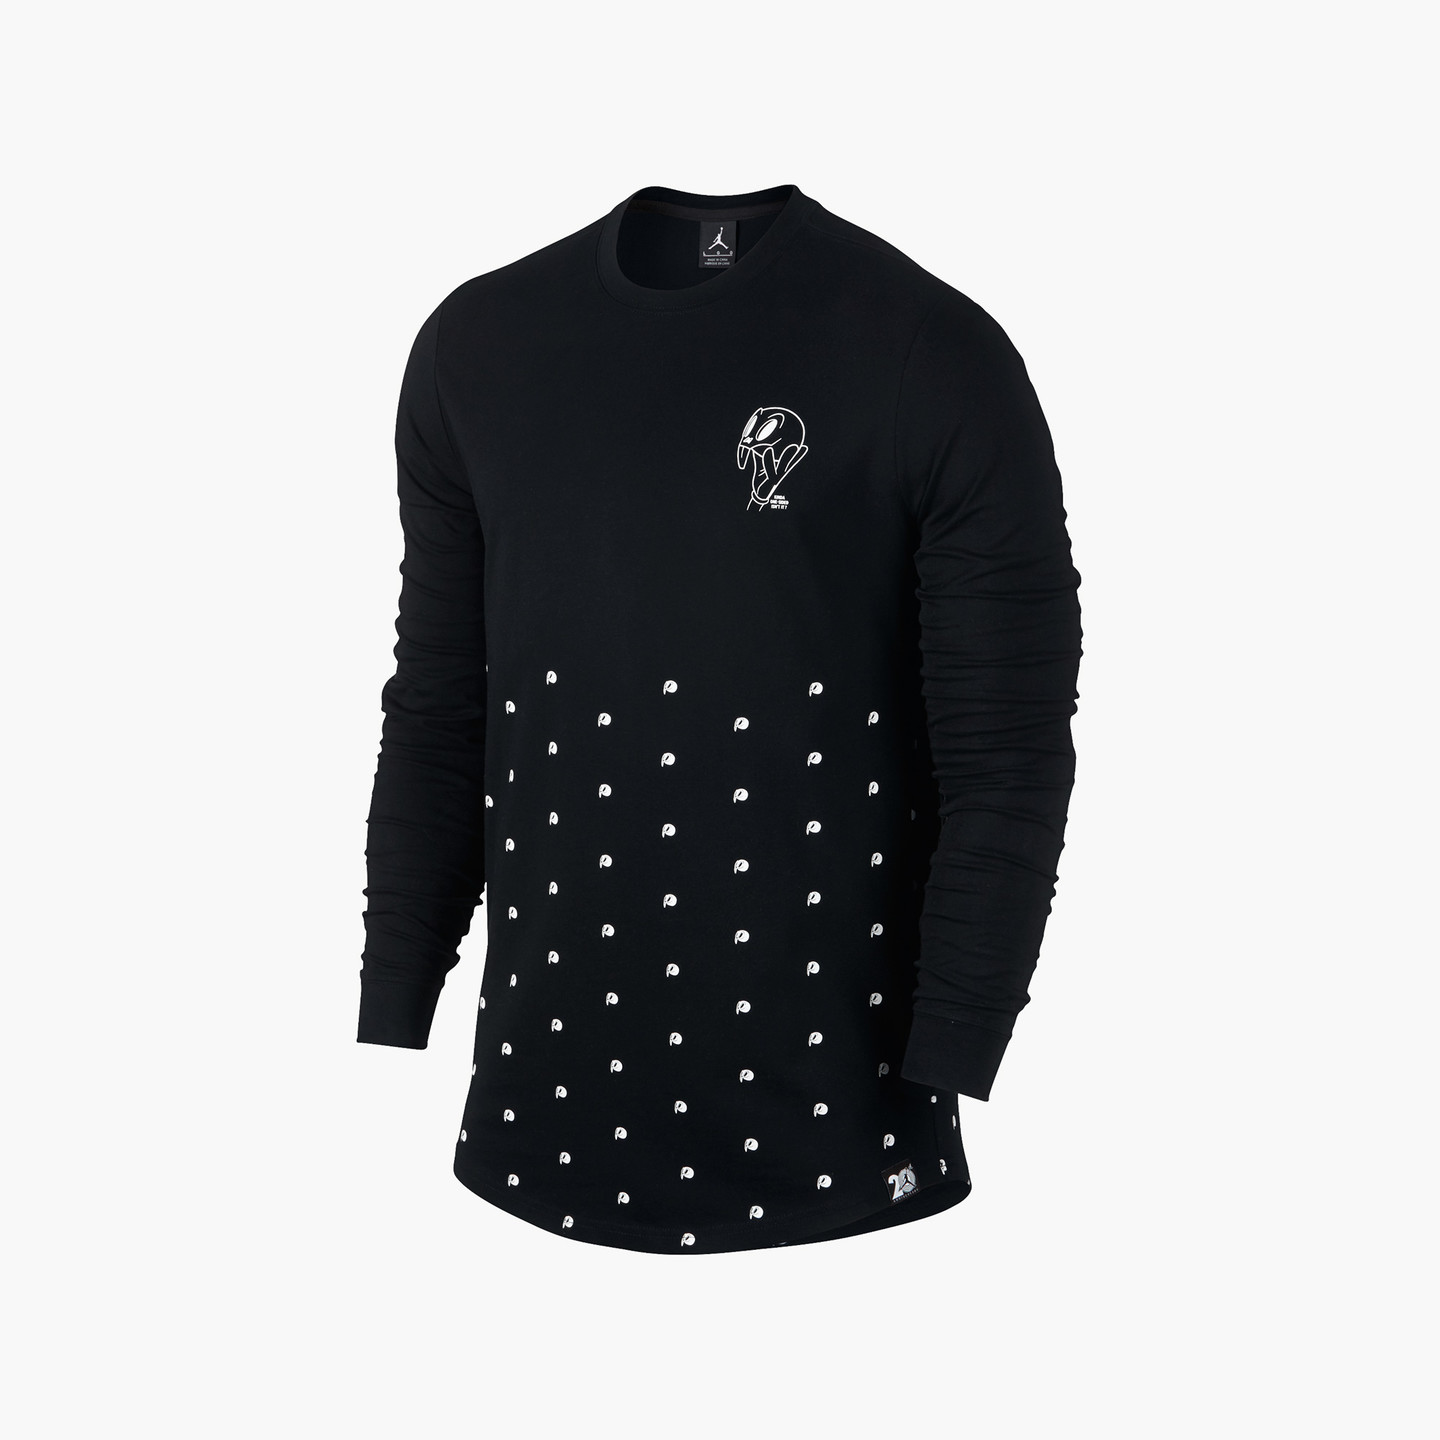 Jordan Air Jordan 11 Longsleeve Black / White 819121-010-L